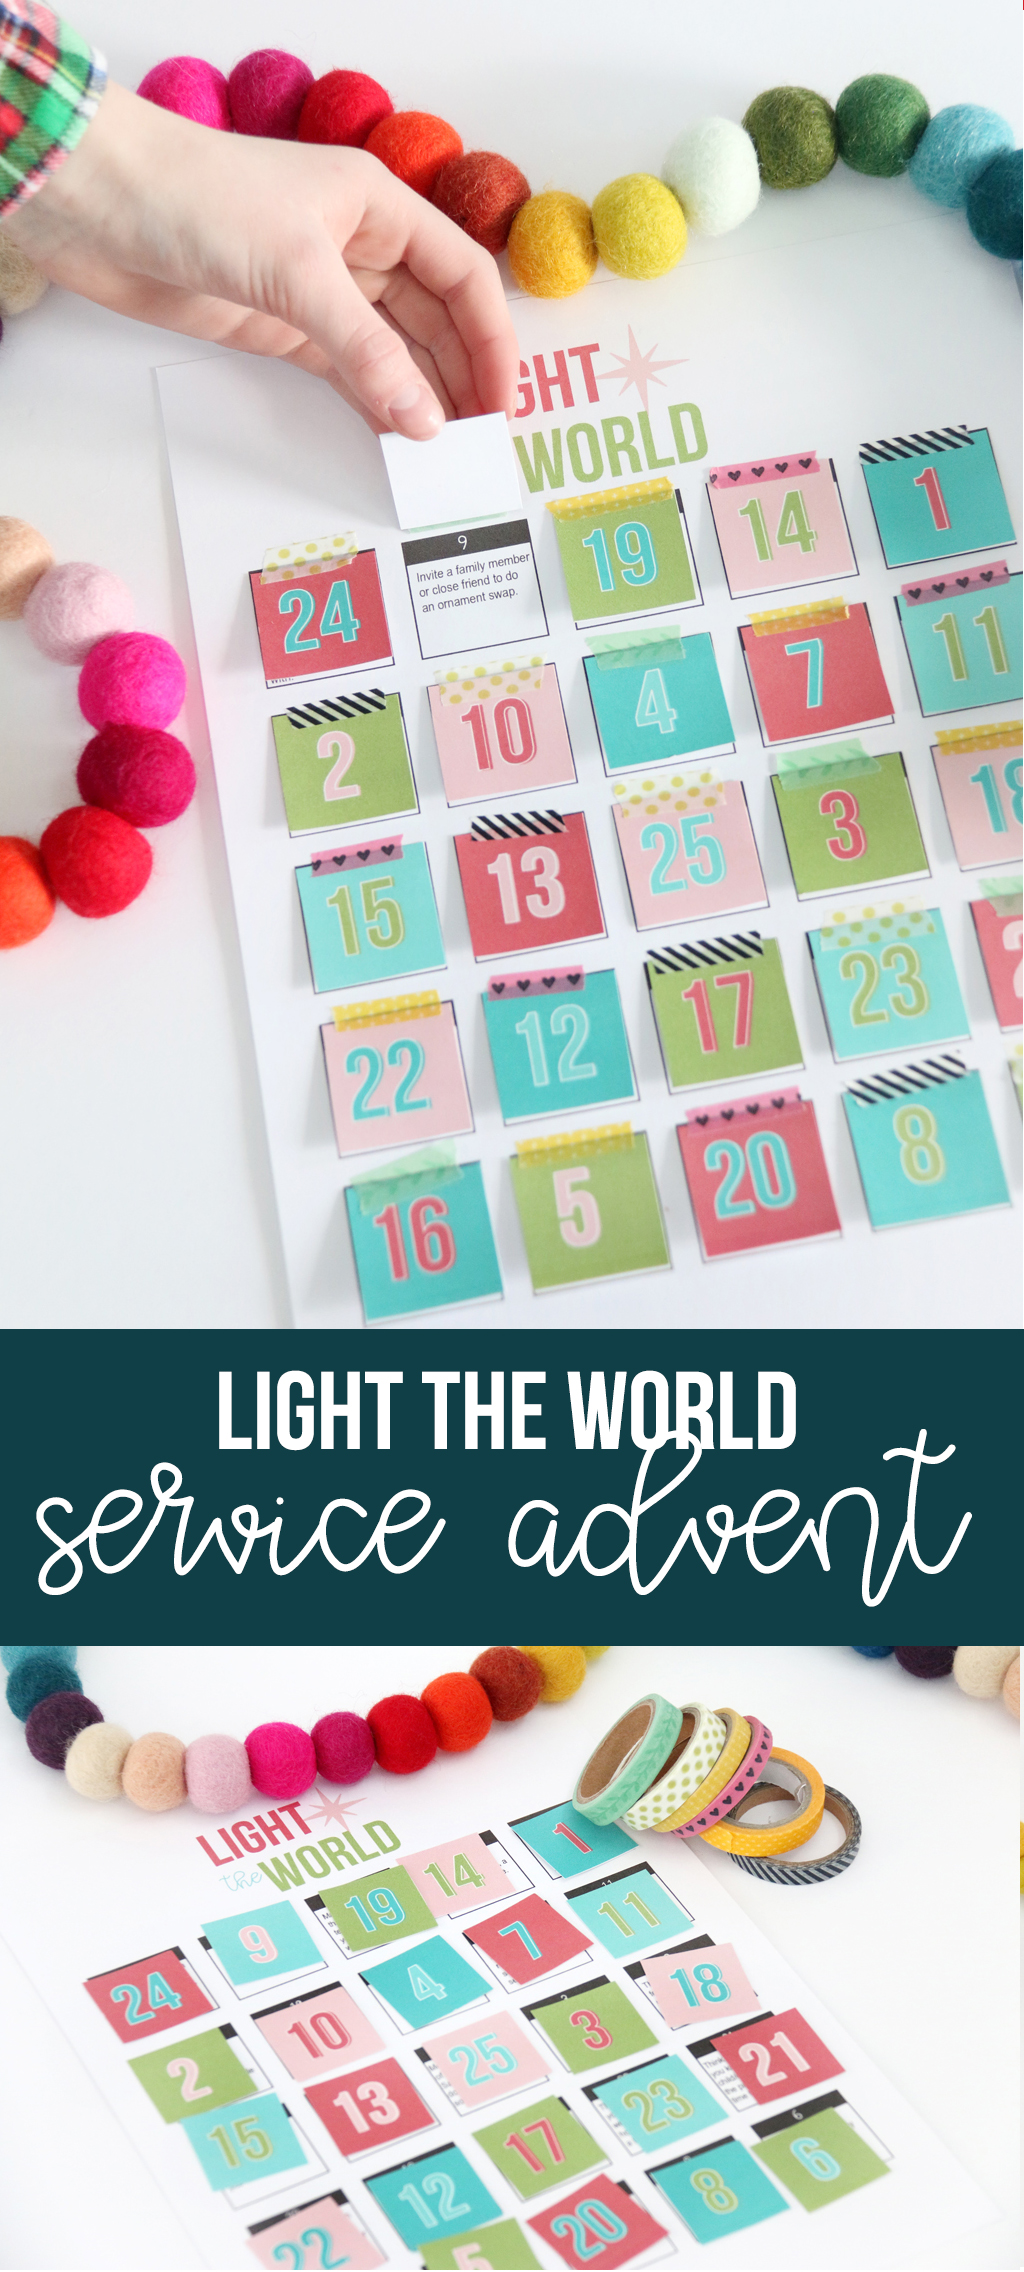 Light the World Service Advent